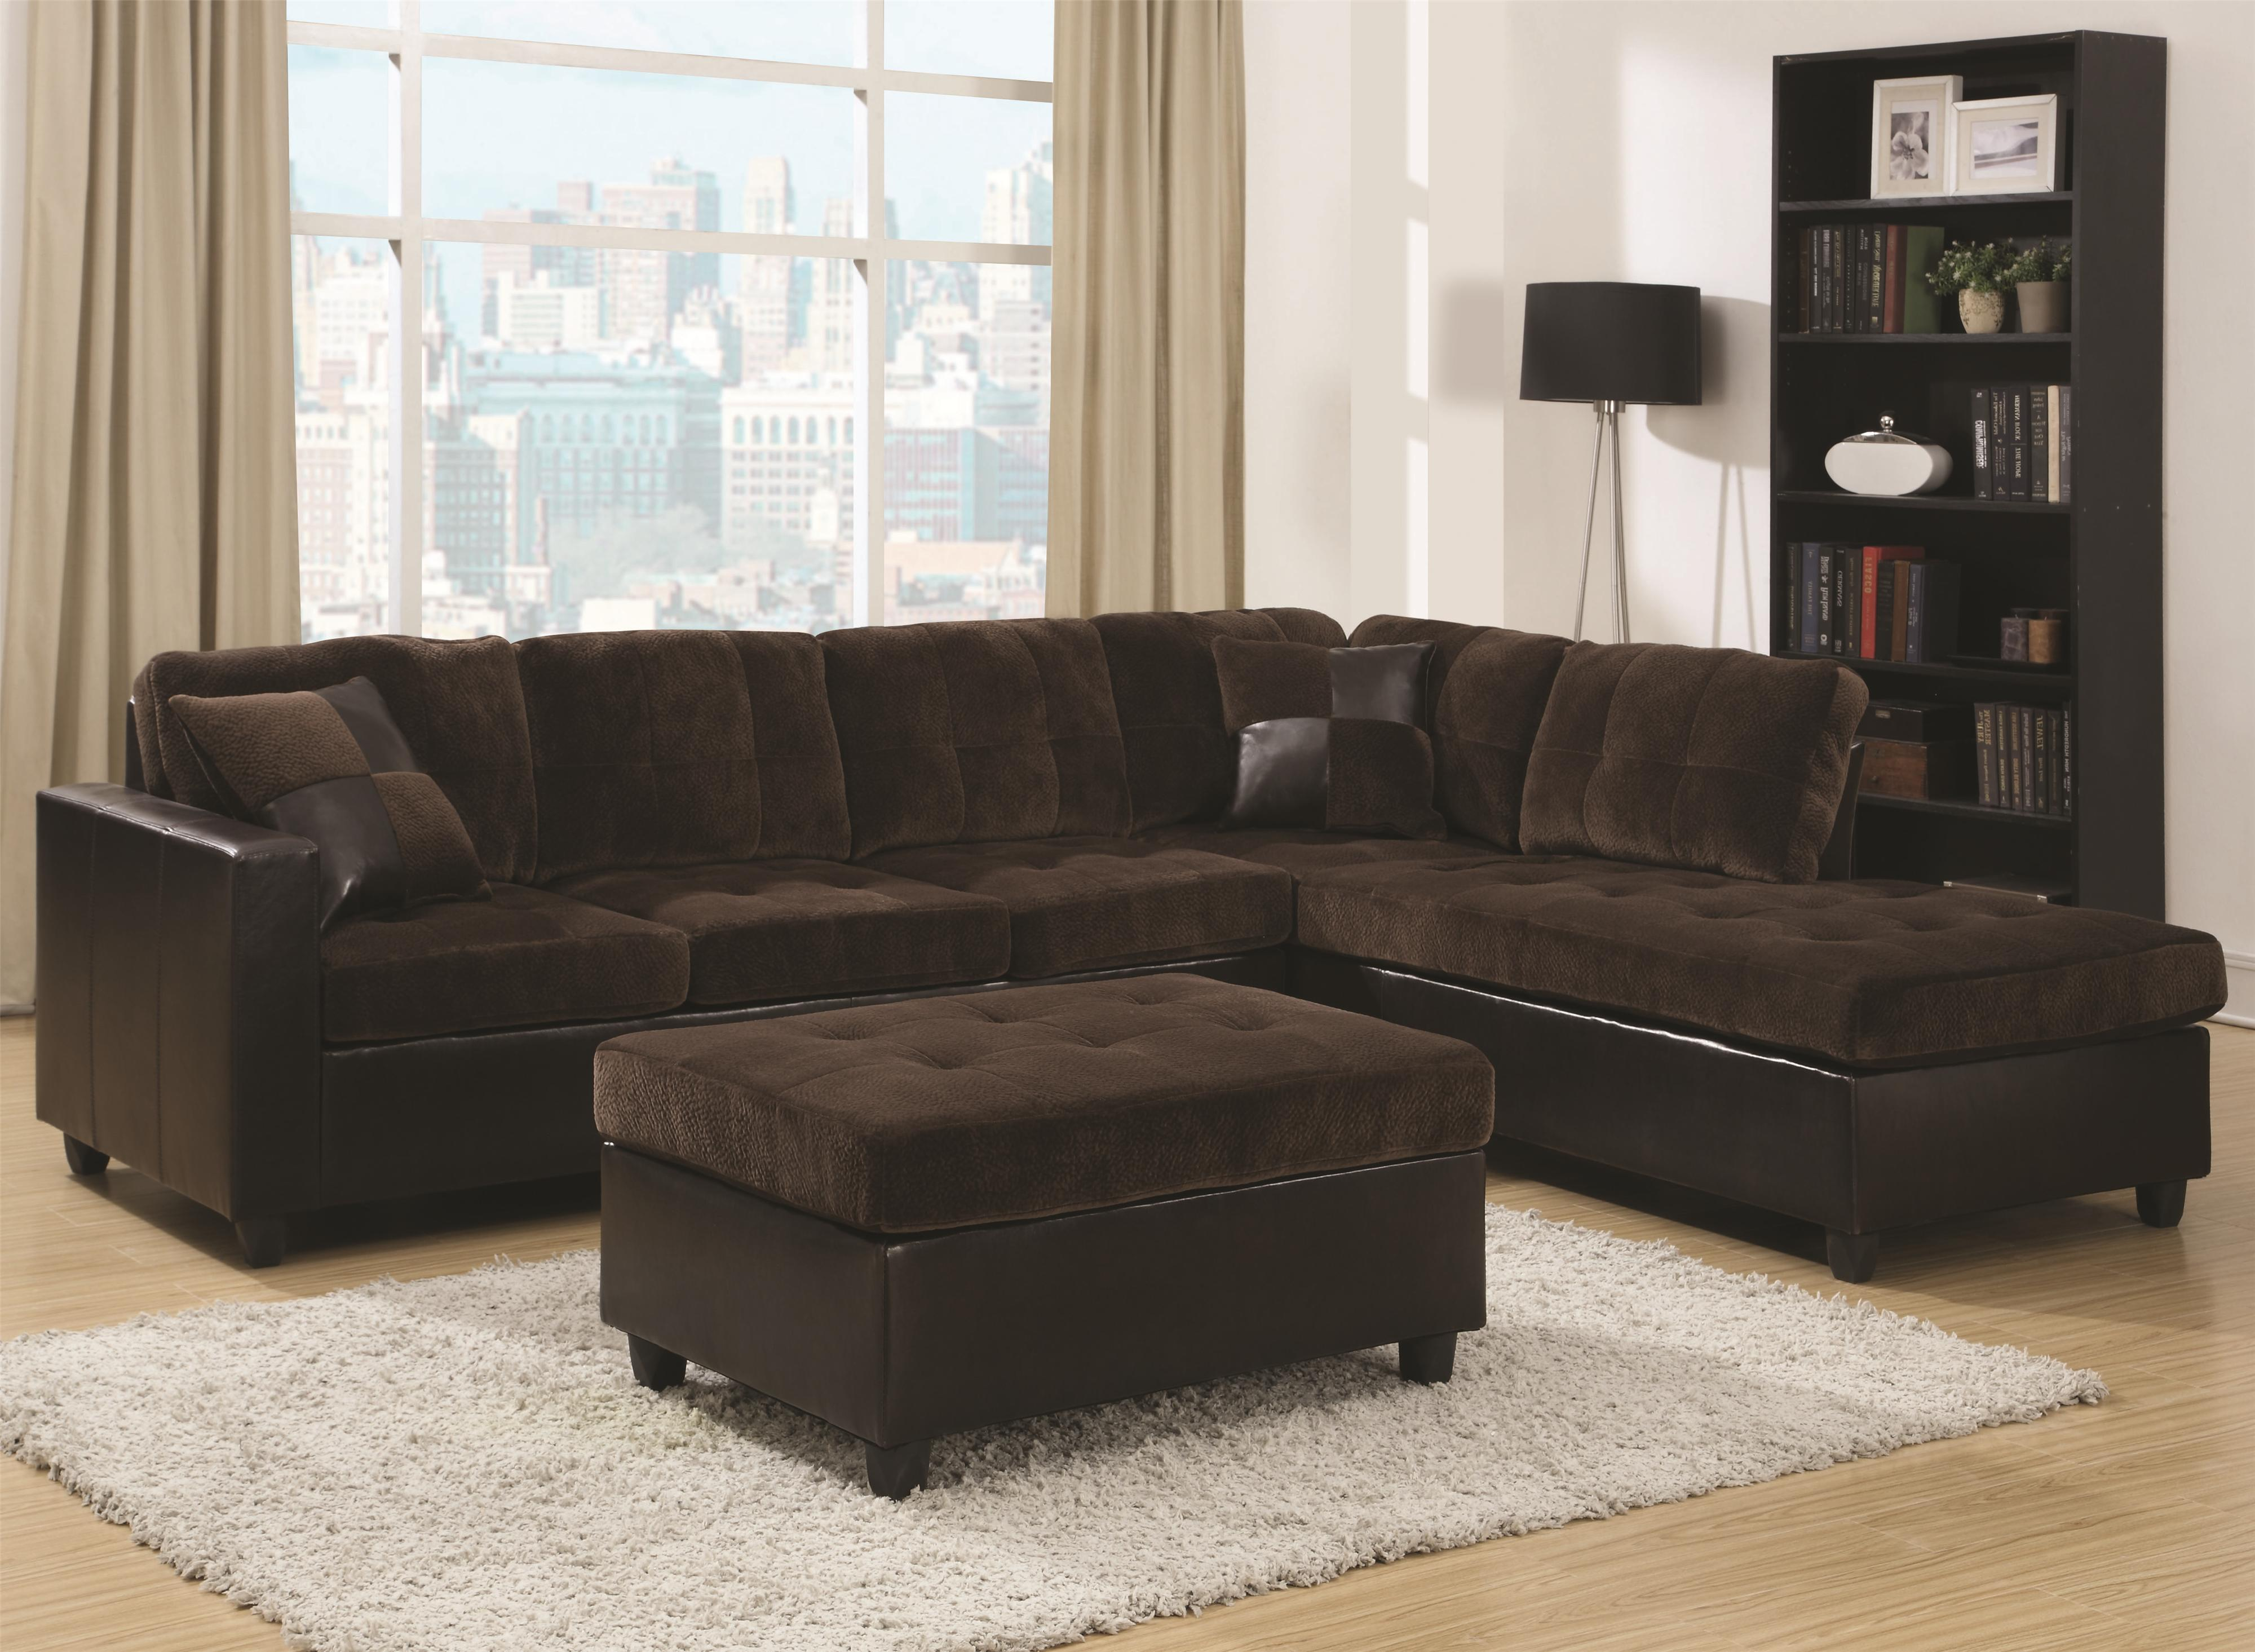 Coaster Mallory Reversible Sectional With Casual And Contemporary Style Furniture Superstore